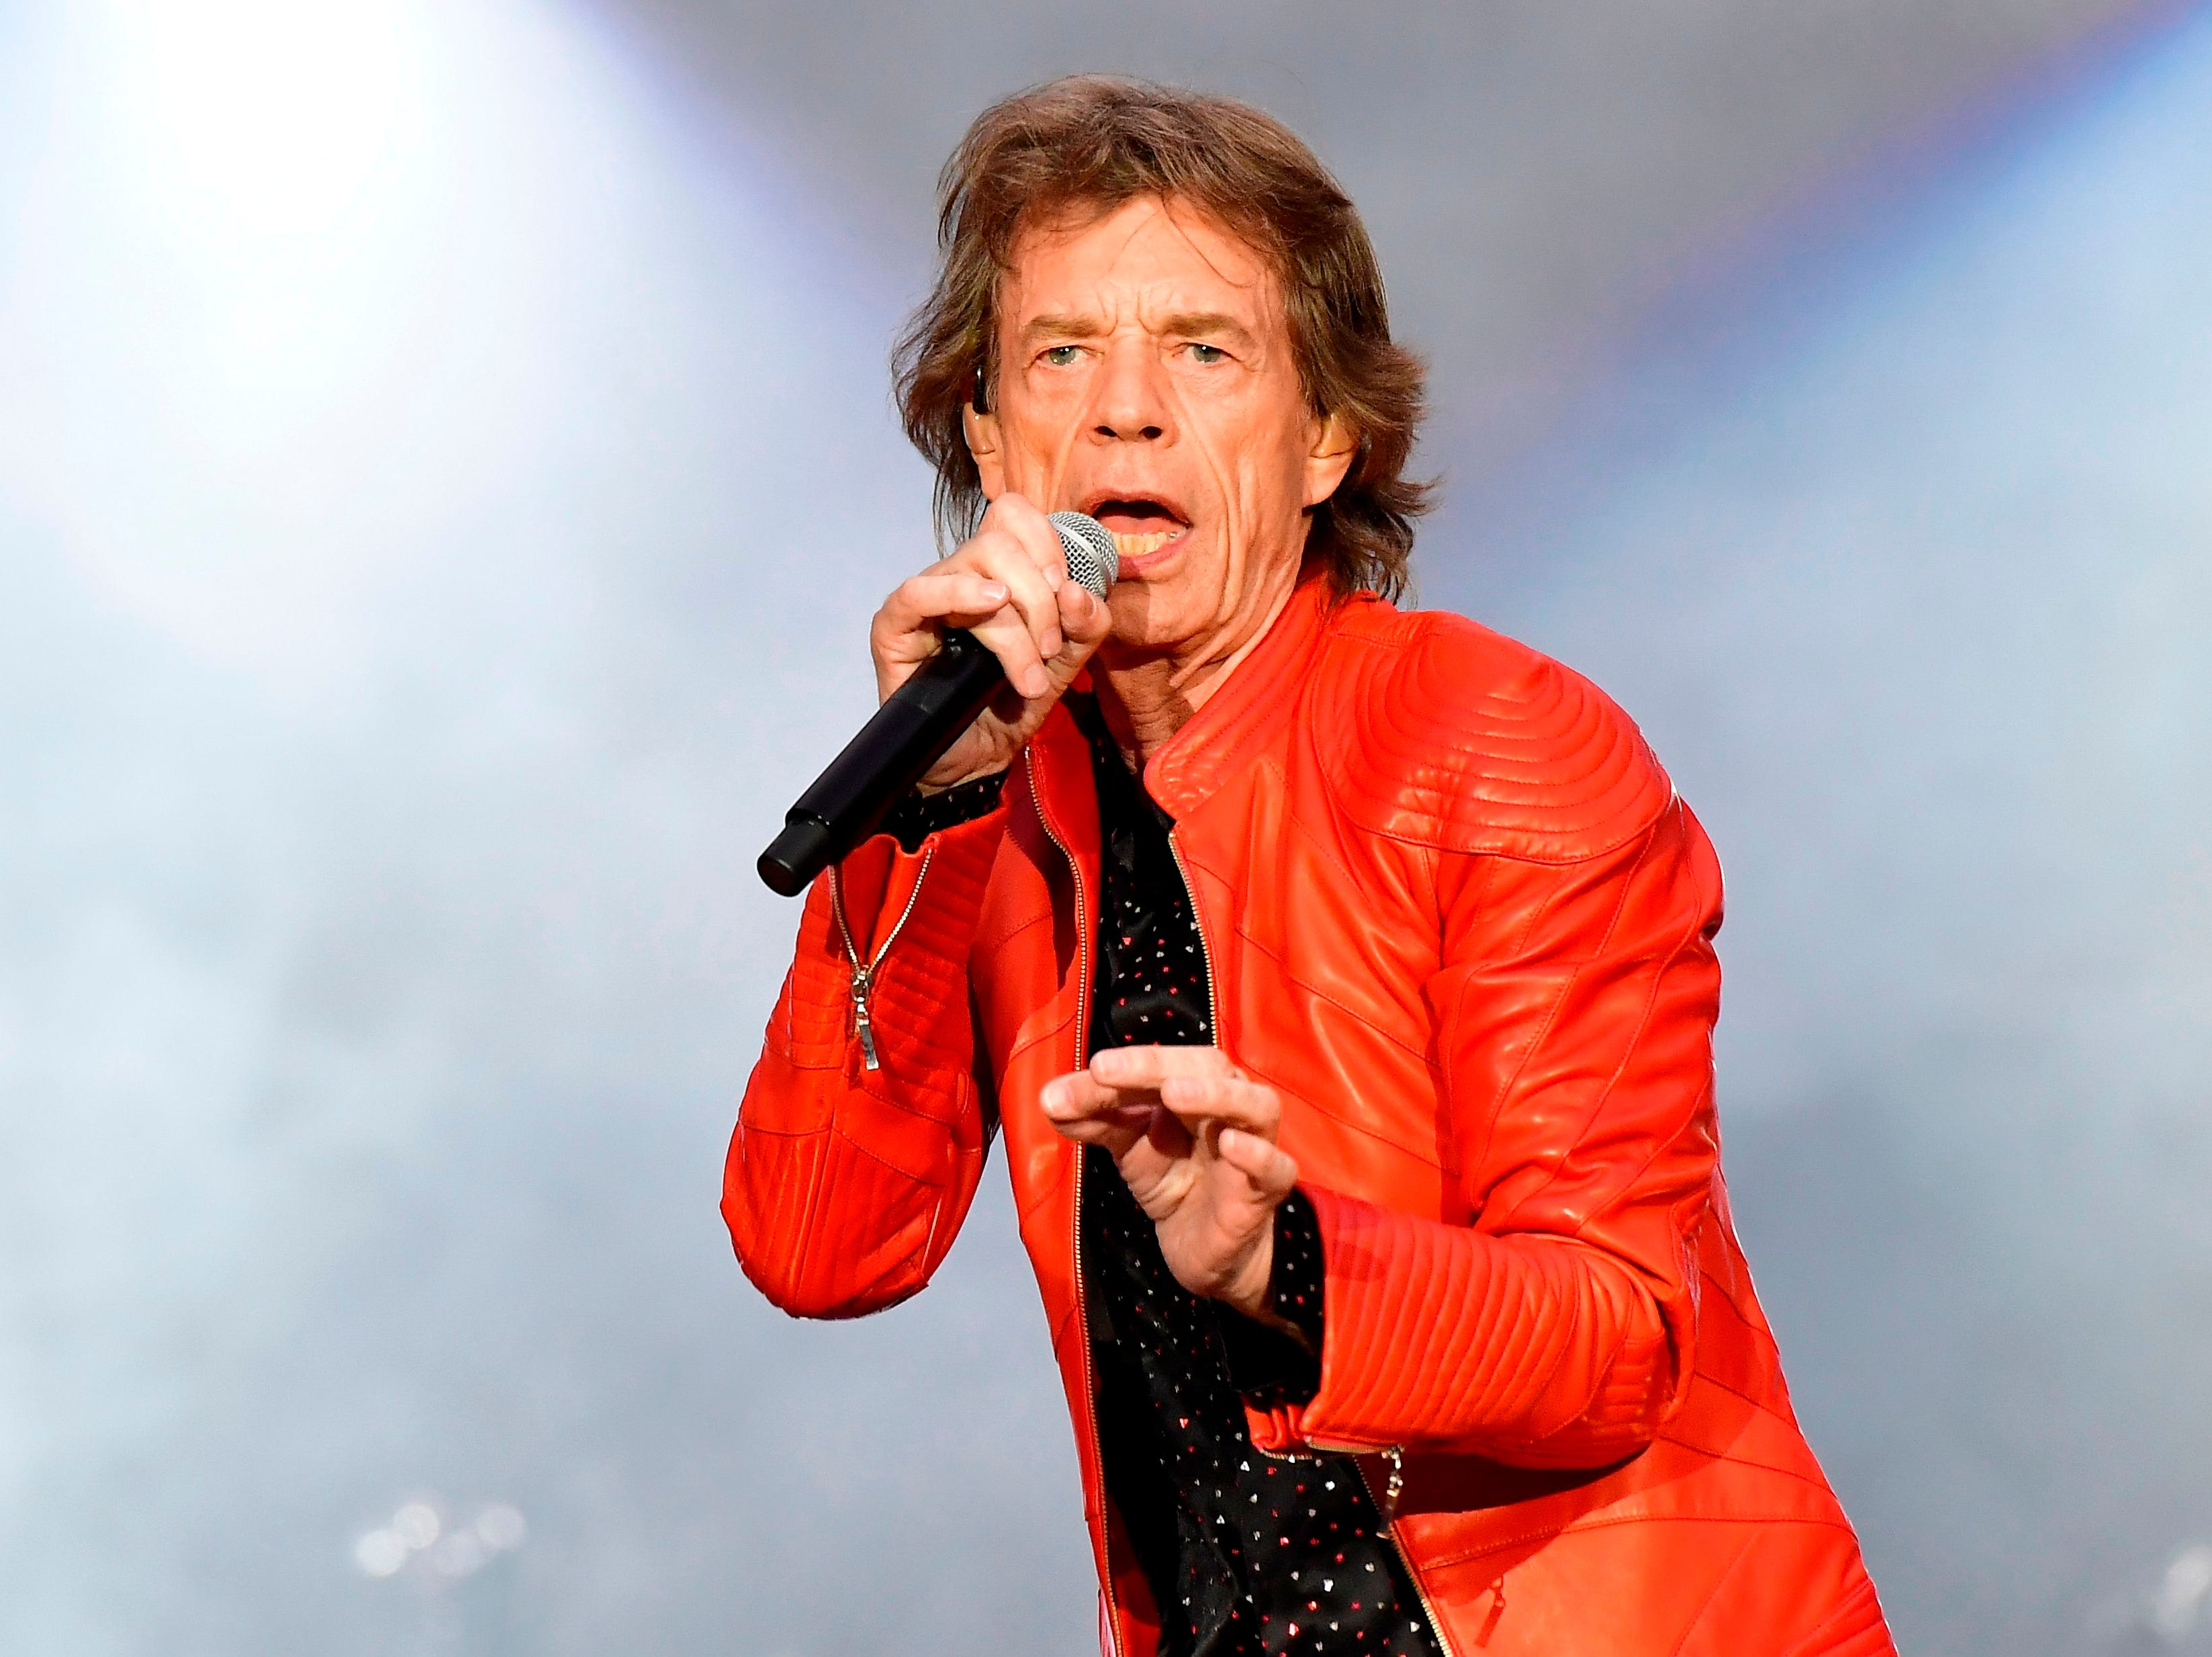 Singer of British band the Rolling Stones, Mick Jagger performs with the band during a  concert at Berlin's Olympic Stadium on June 22, 2018. / AFP PHOTO / Tobias SCHWARZTOBIAS SCHWARZ/AFP/Getty Images ORIG FILE ID: AFP_16G3L9